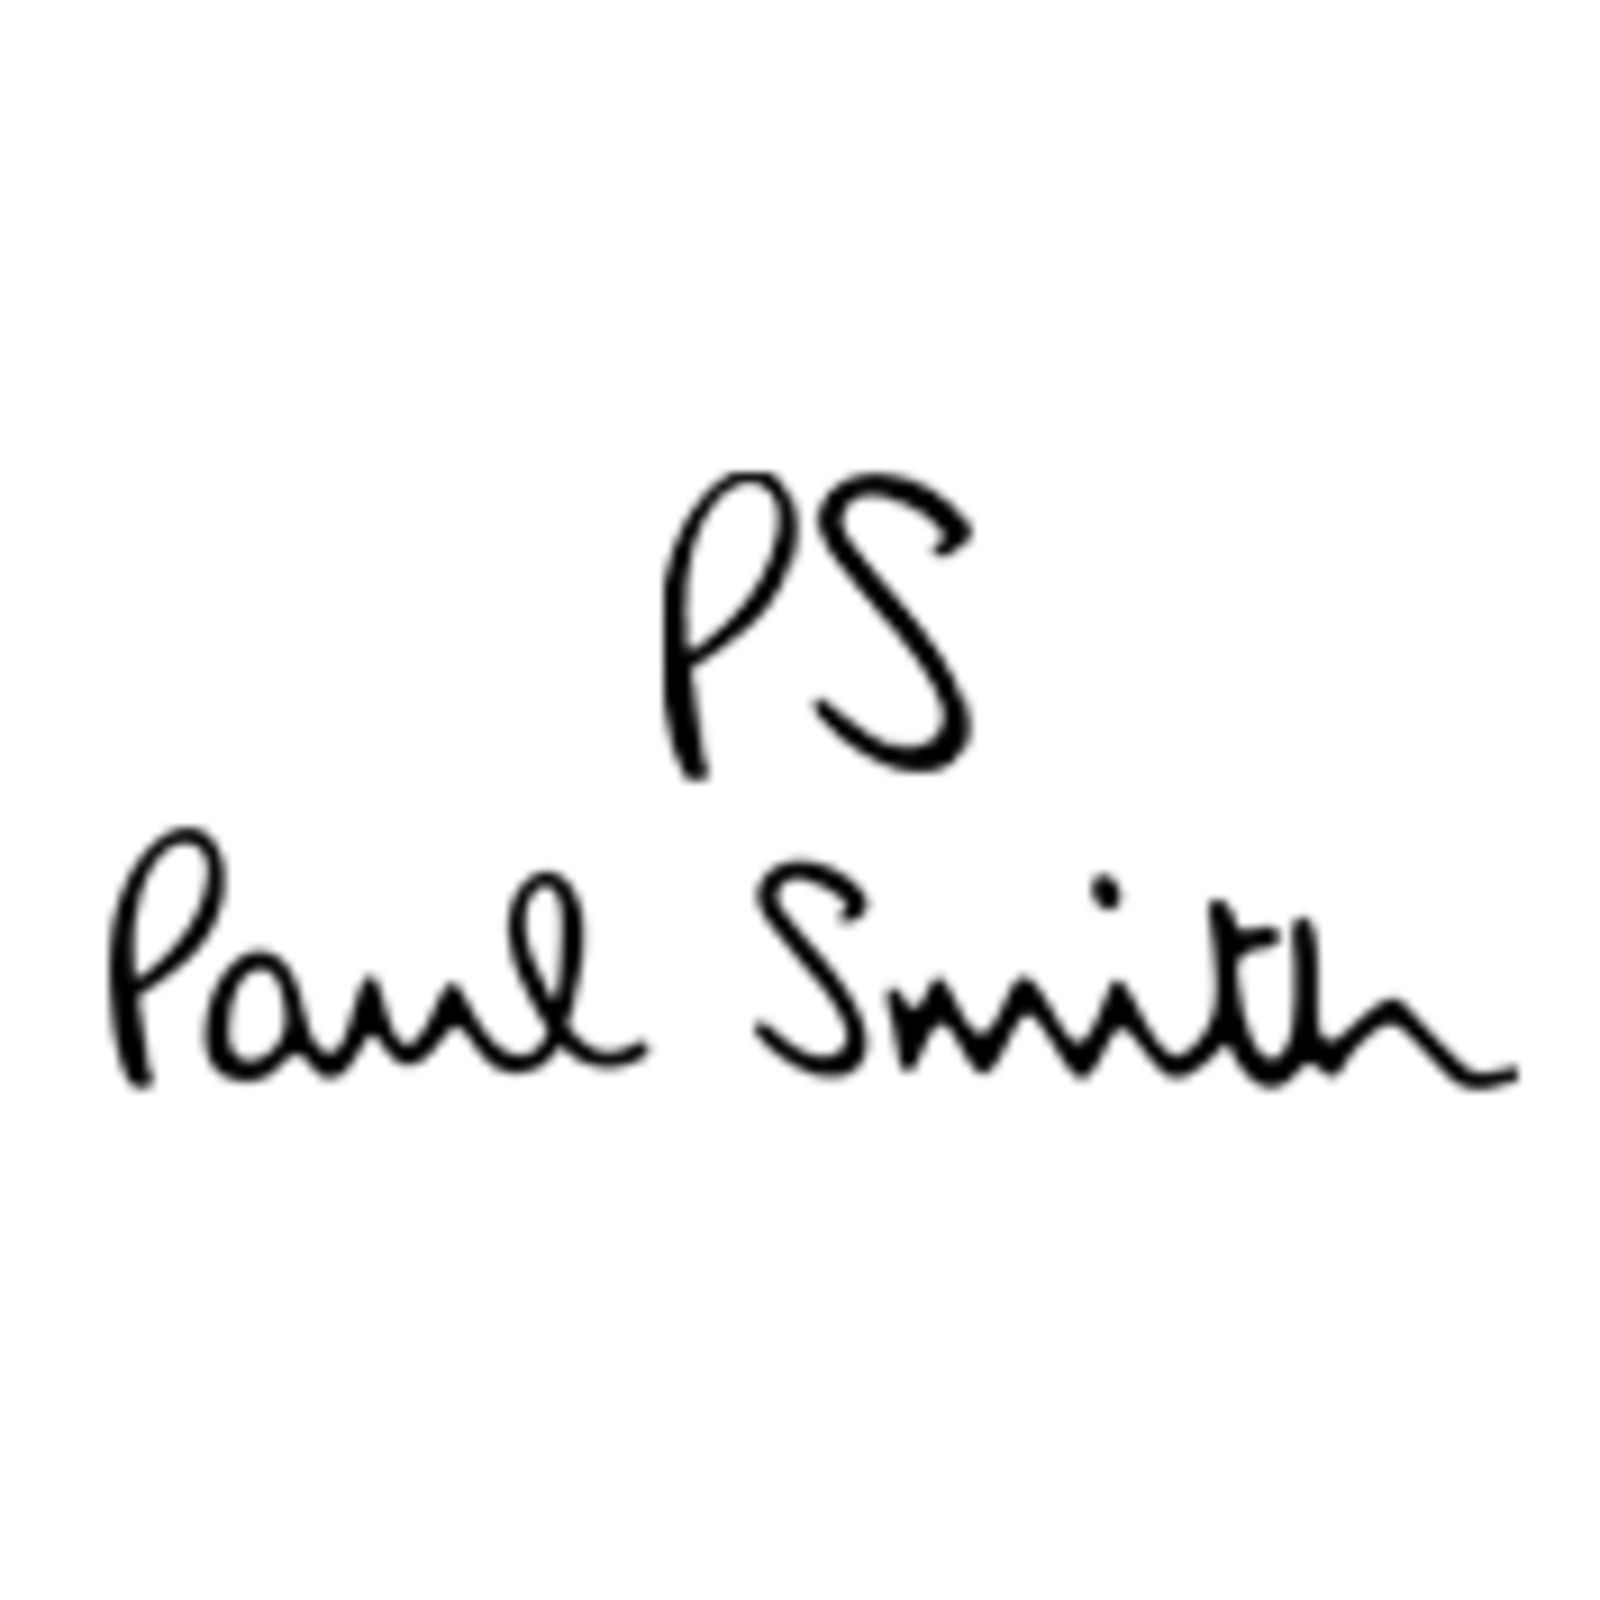 PS Paul Smith (Bild 1)